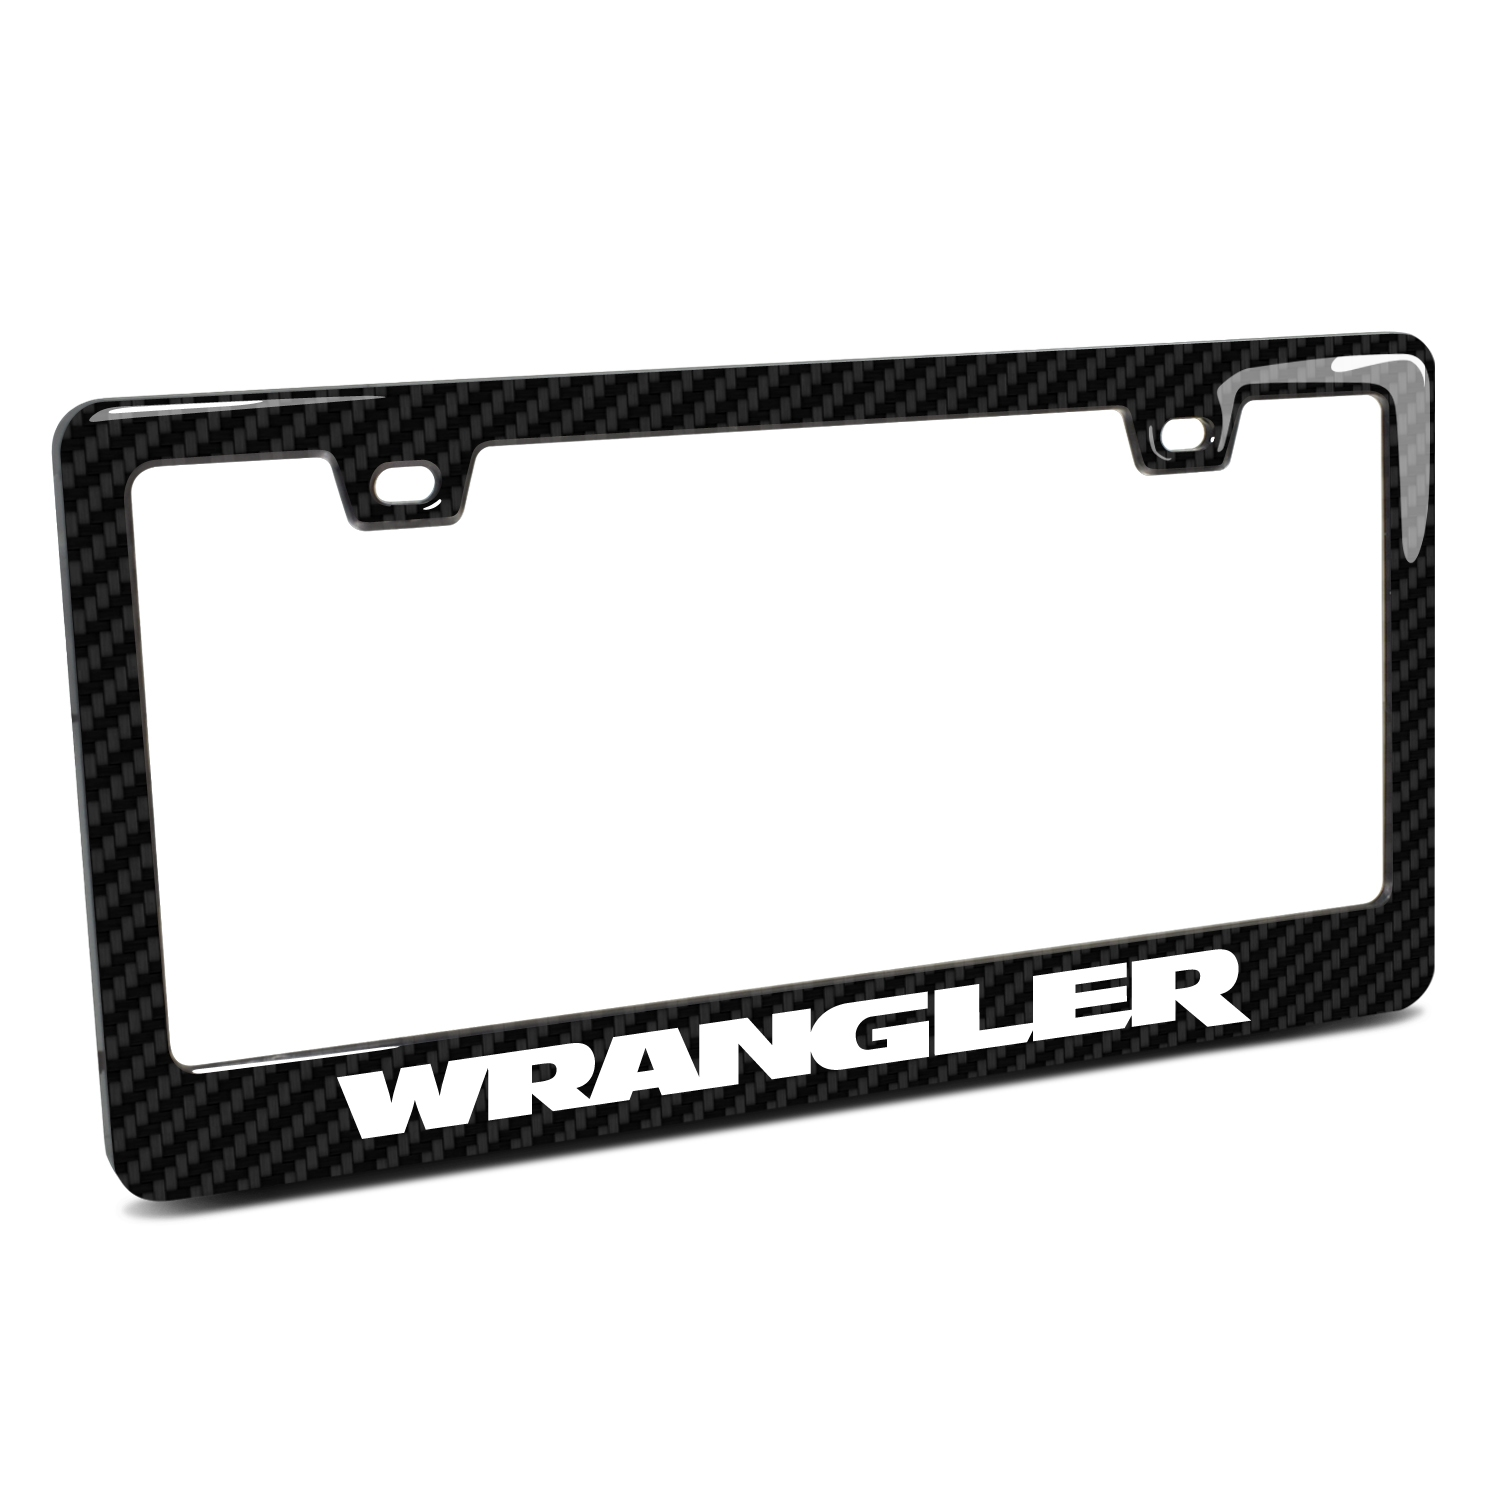 Jeep Wrangler Black Real 3K Carbon Fiber Finish ABS Plastic License Plate Frame